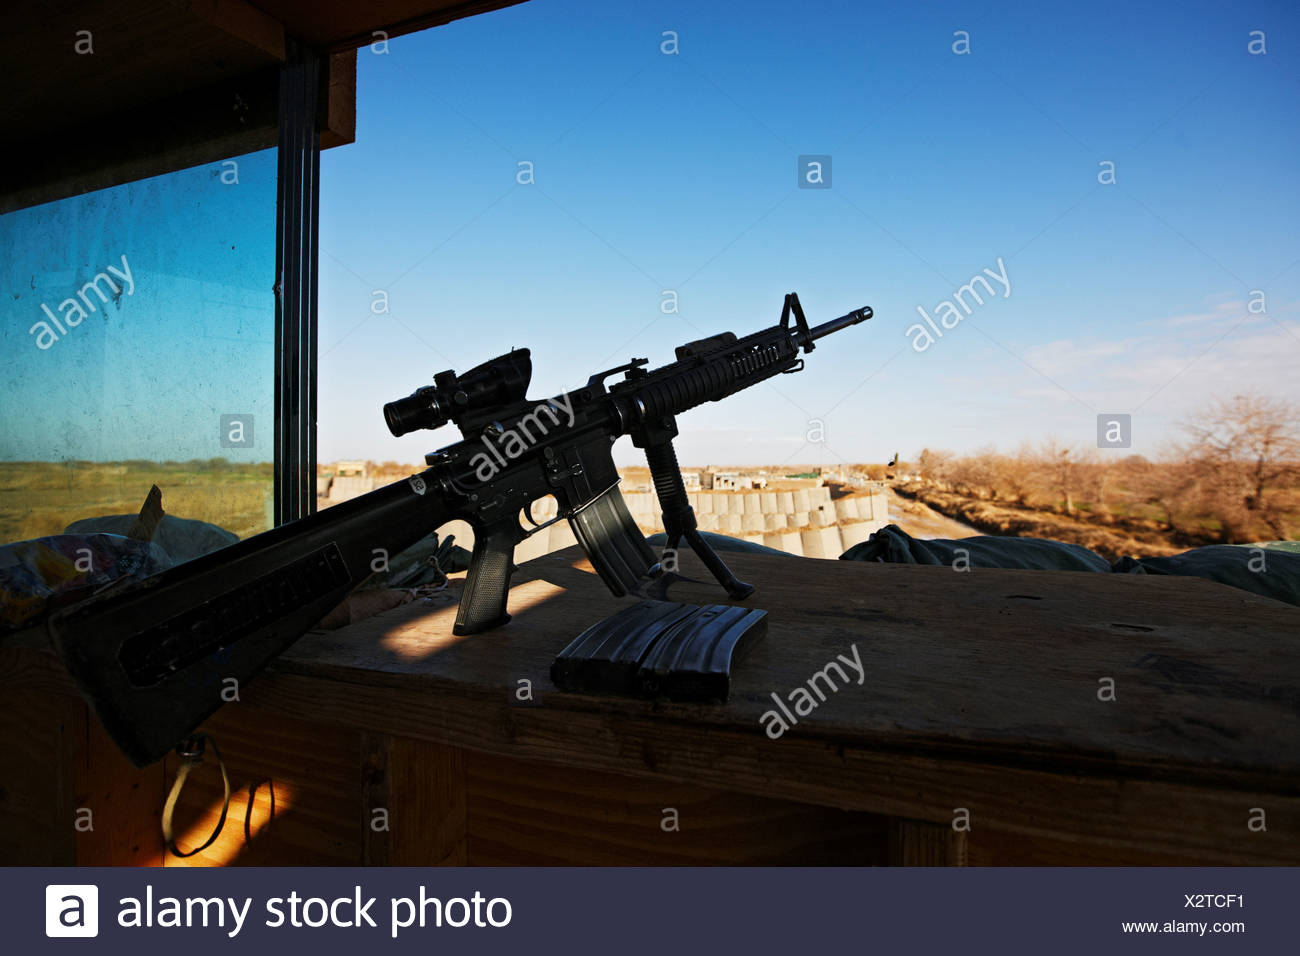 An M4 Carbine at Rest - Stock Image